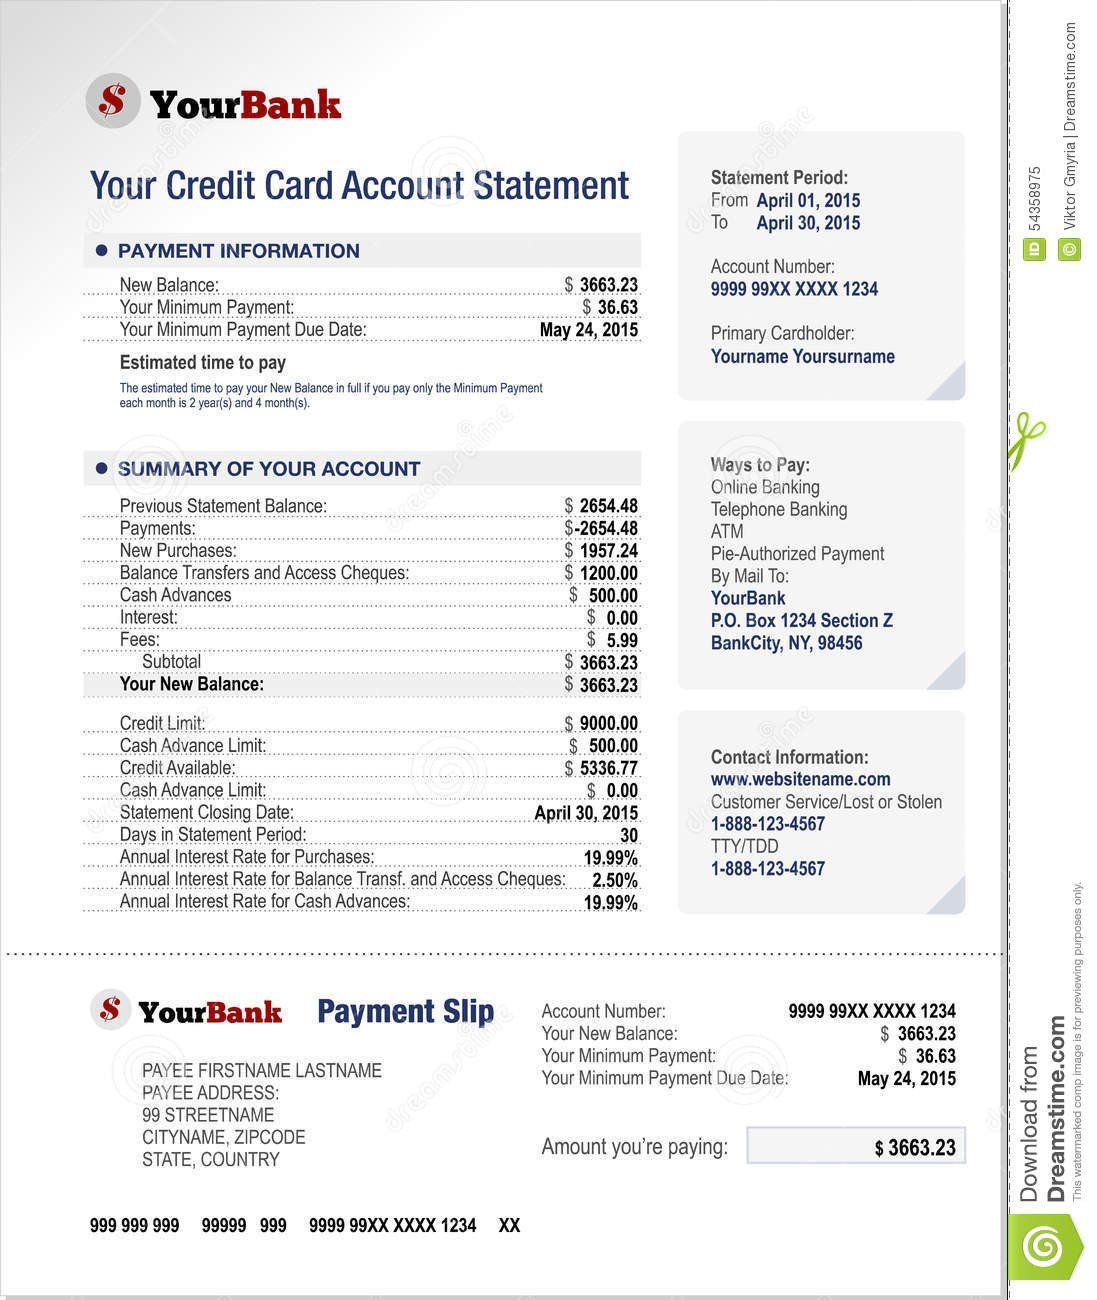 Us Bank Statement Template Awesome Credit Card Bank Account Statement Template Stock Vector Credit Card Statement Statement Template Bank Credit Cards